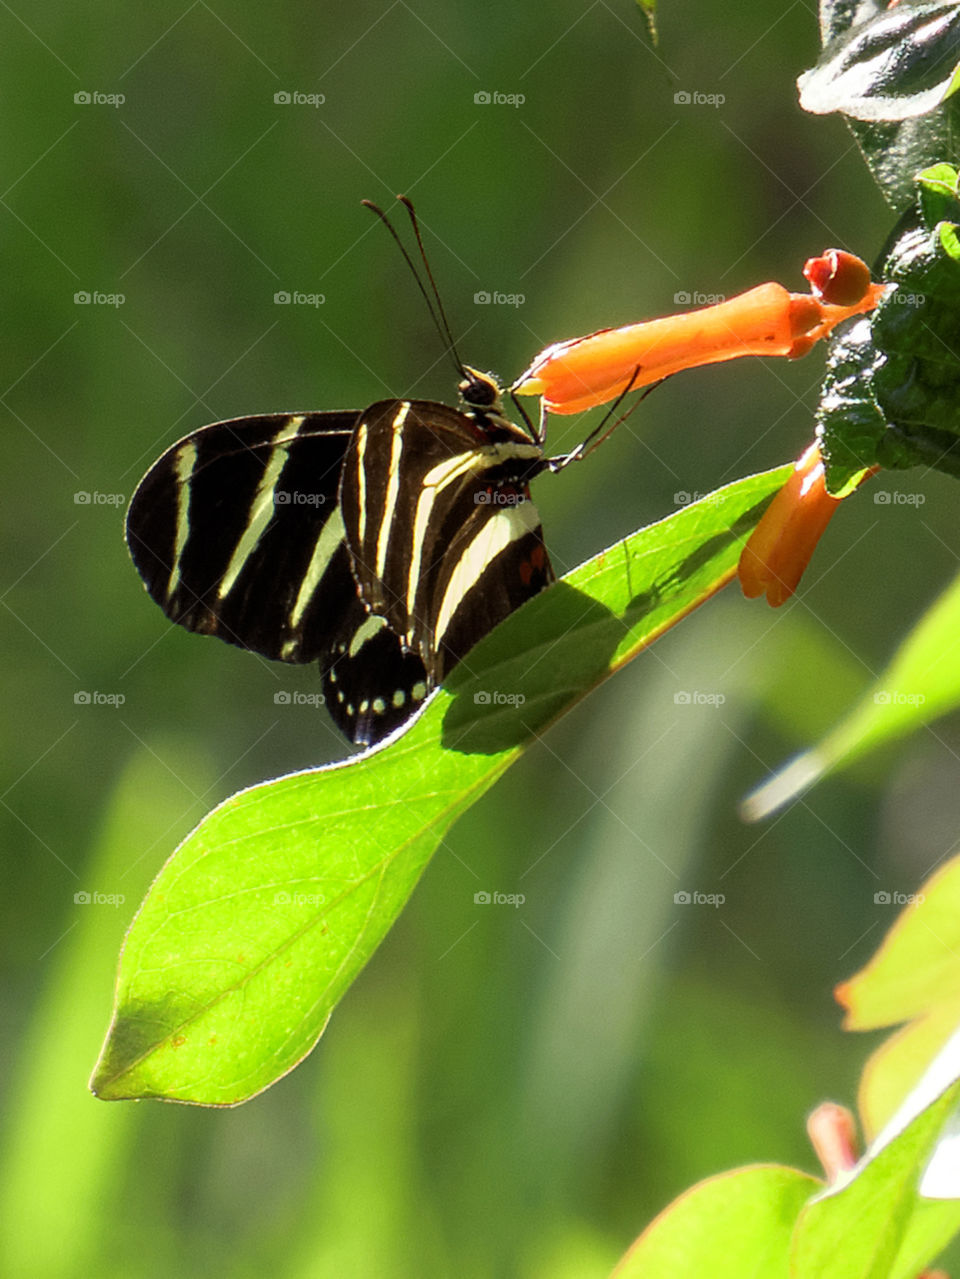 Nectar . Zebra Longwing Butterfly extracting nectar from flower on firebush plant in Florida